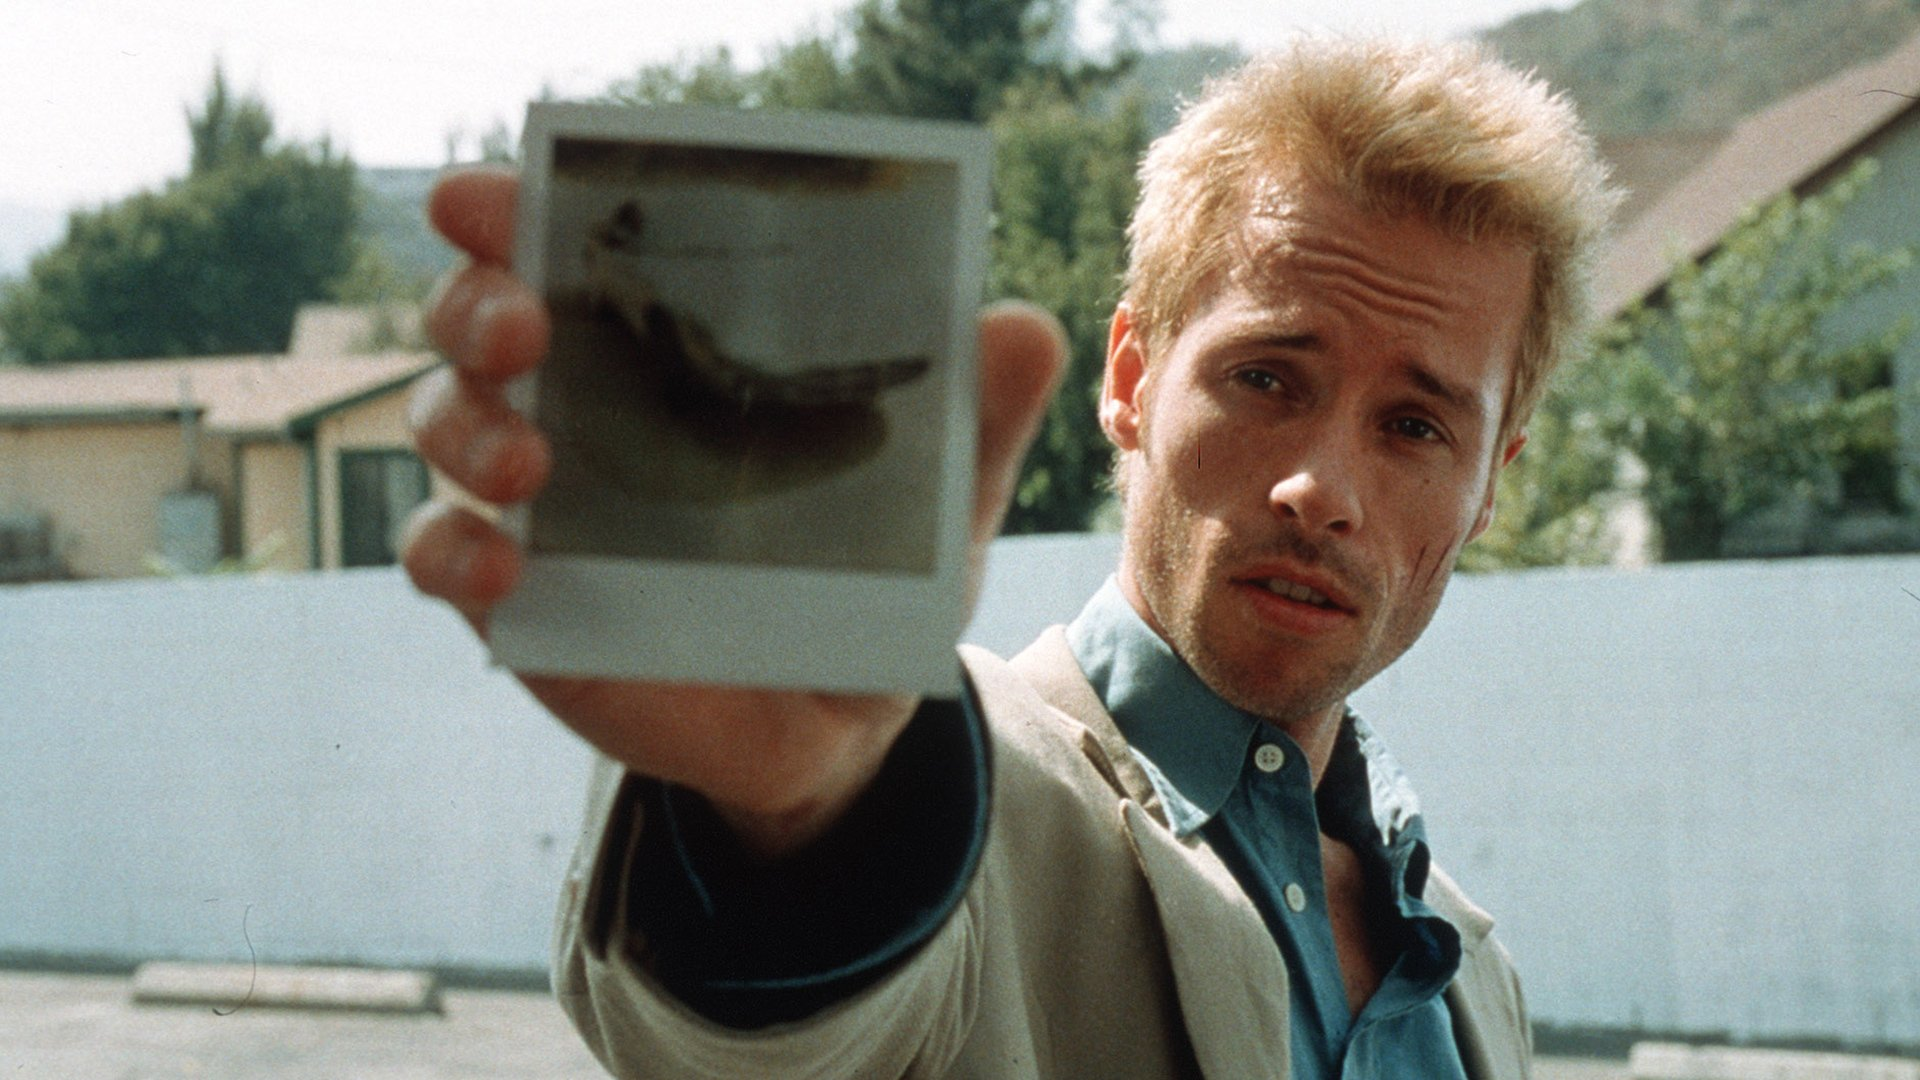 christopher nolan s memento was a sleeper smash hit in 2000 the smart    Memento Polaroid